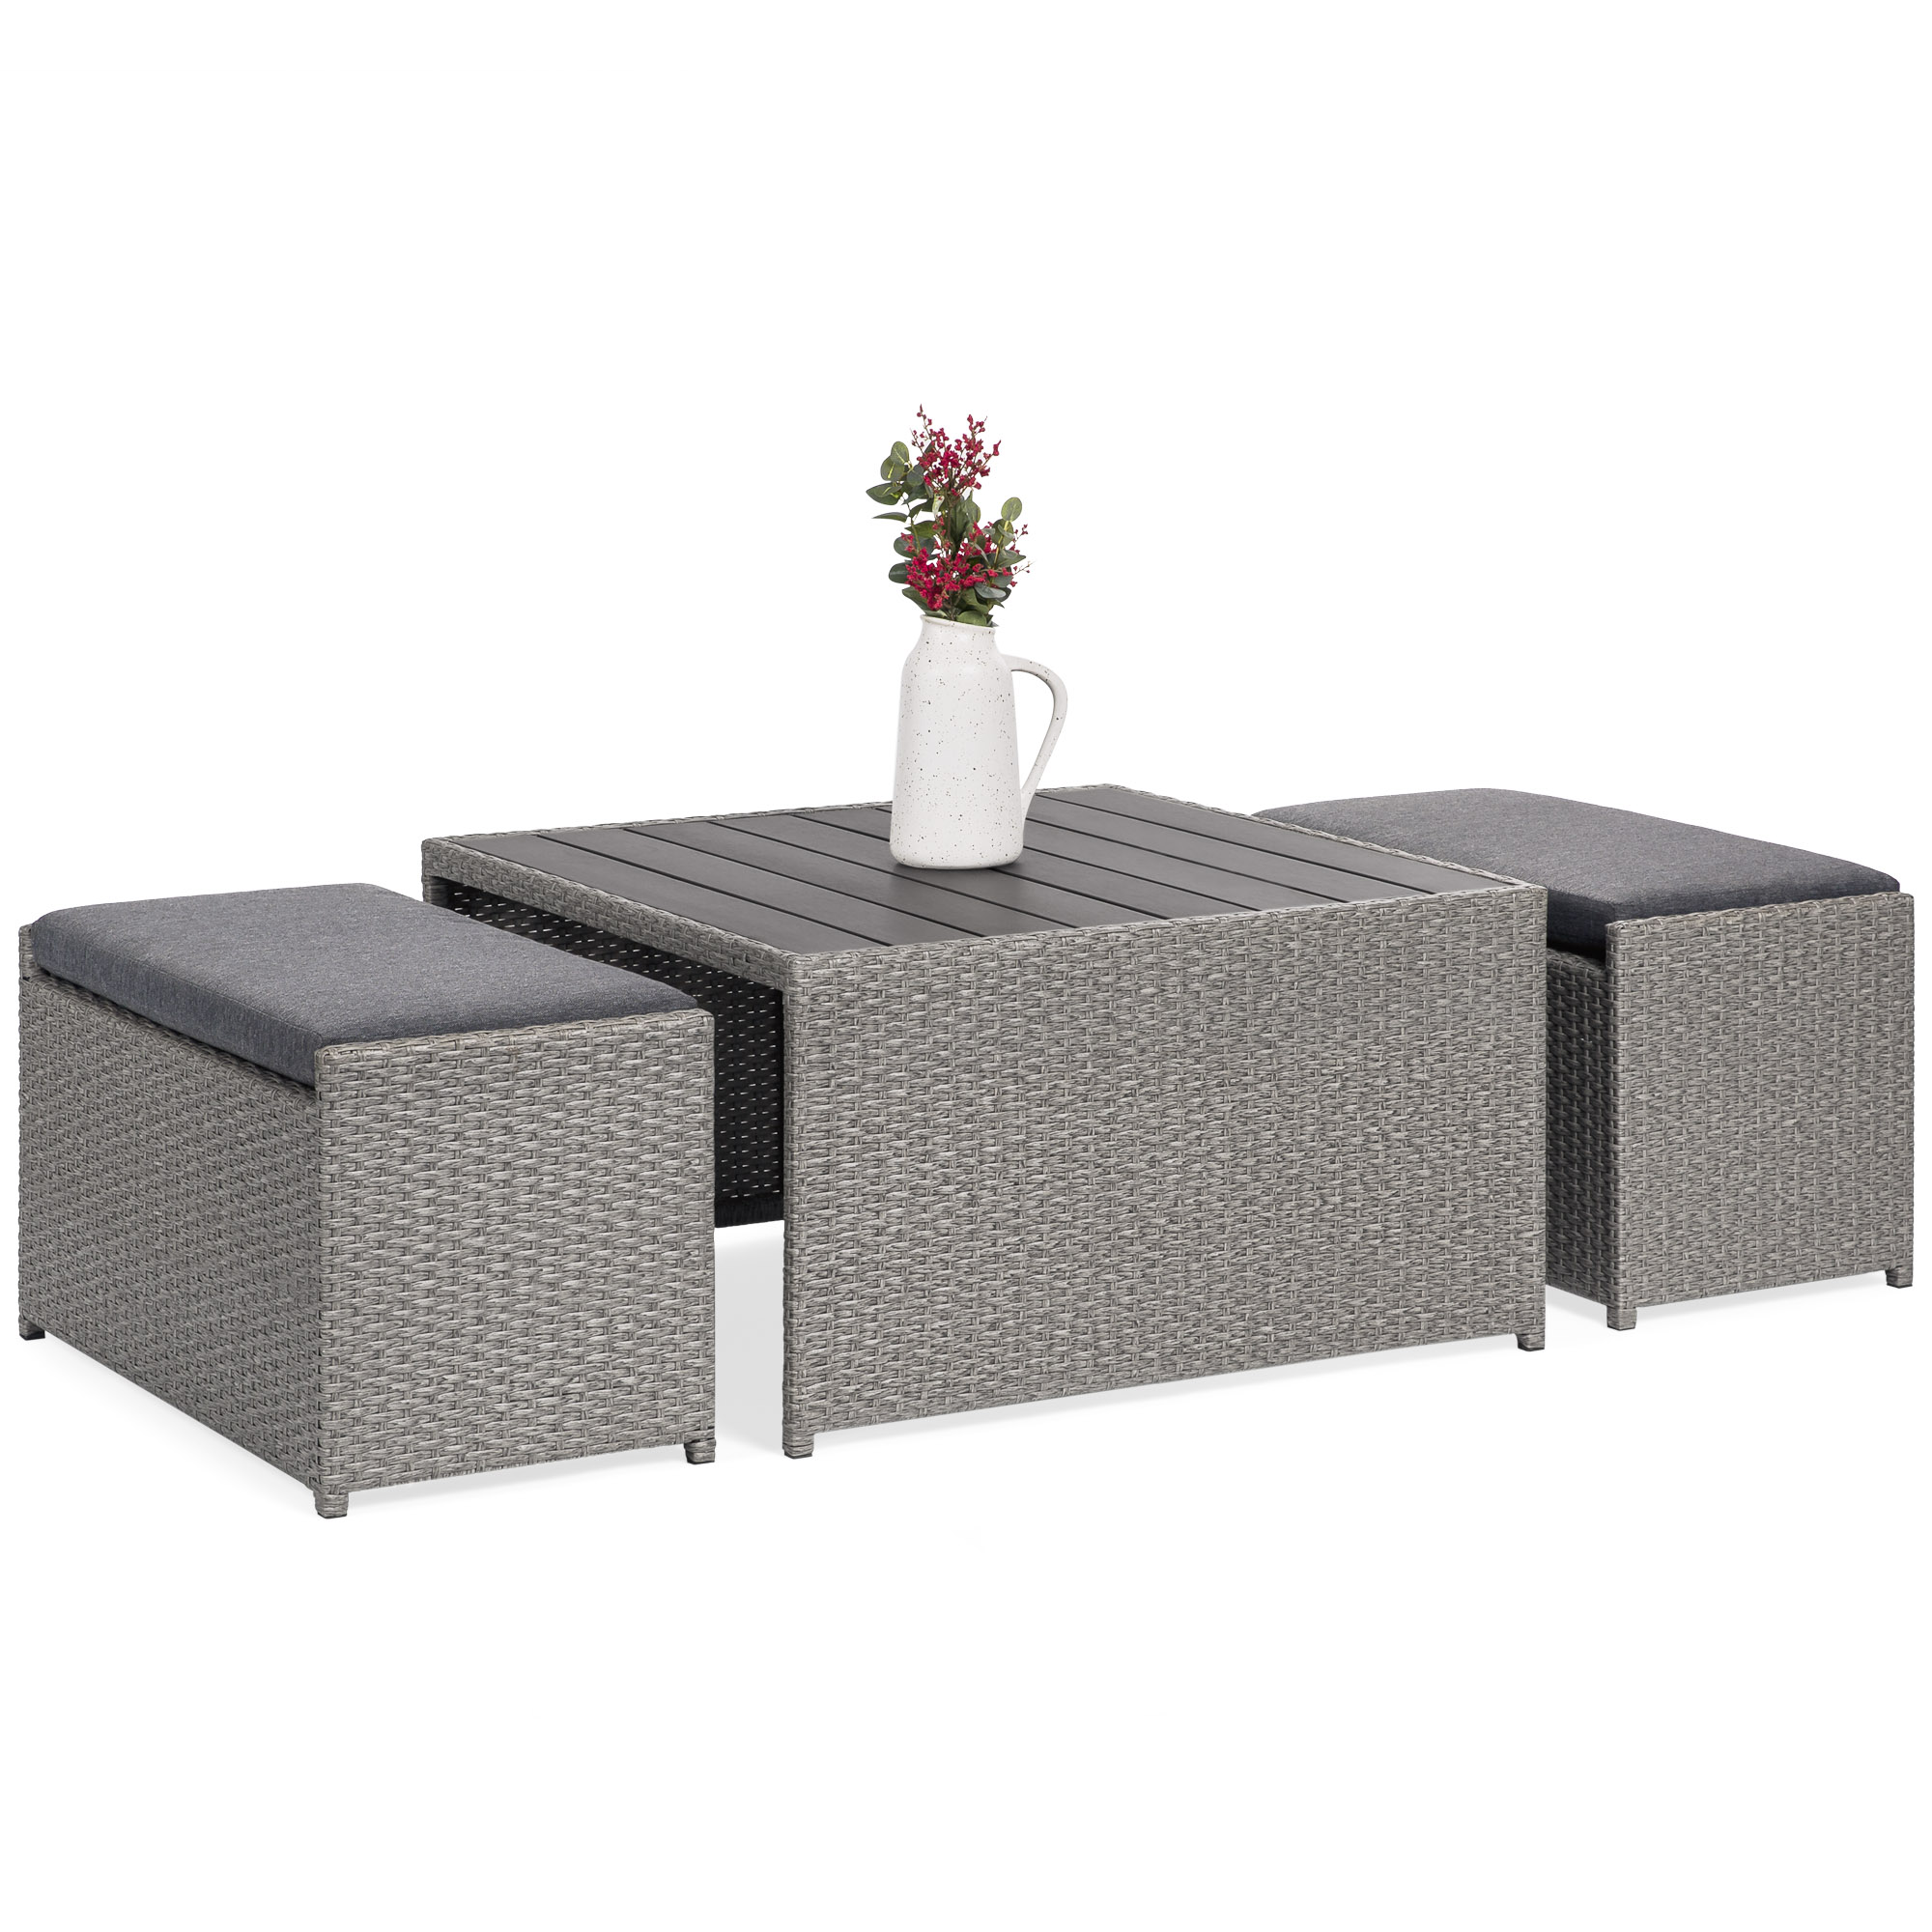 Best Choice Products 3 Piece Outdoor Modern Wicker Coffee Table Set For Patio Porch W 2 Ottoman Benches Gray Walmart Com Walmart Com